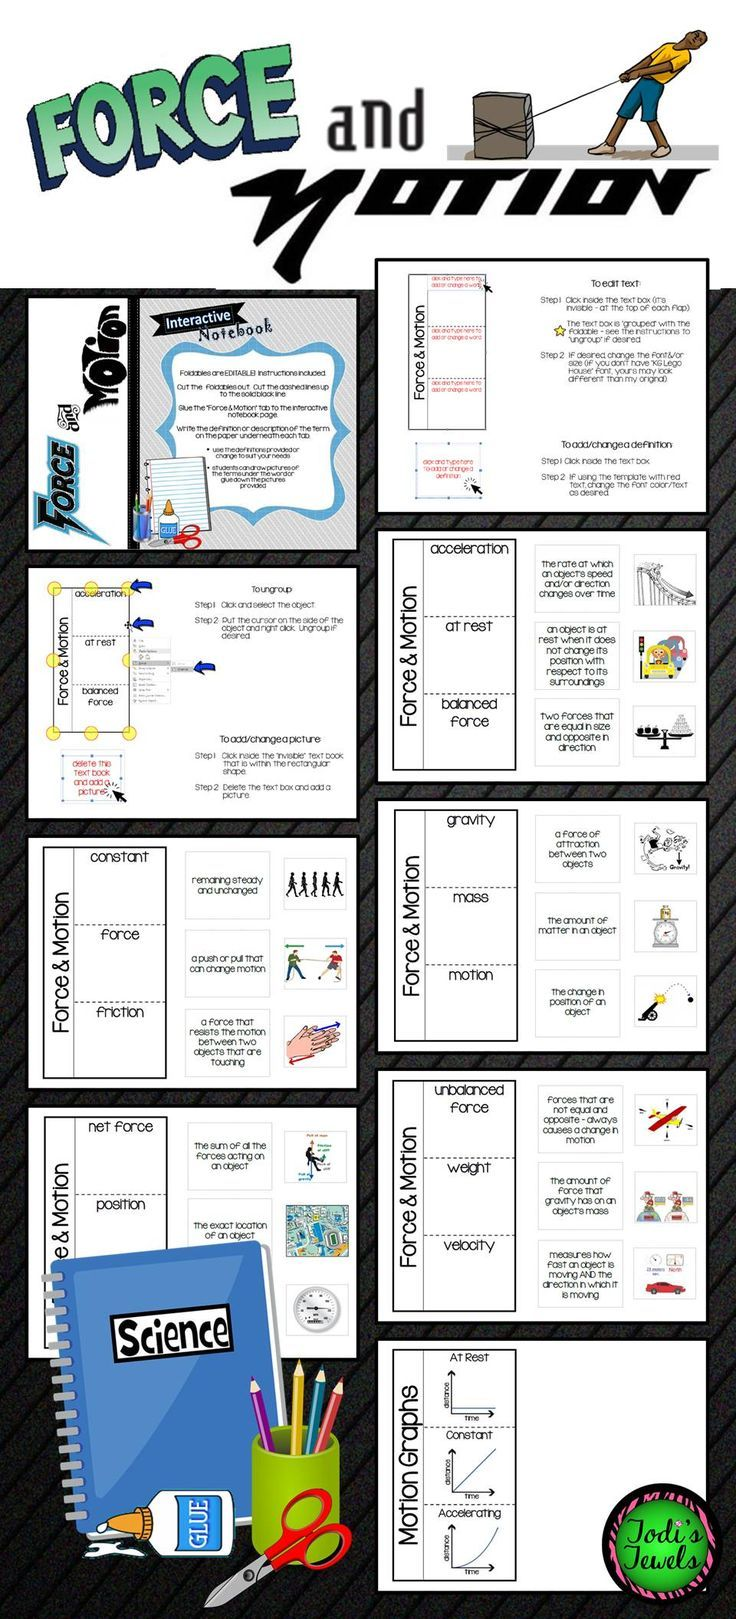 EDITABLE! Enrich your Force & Motion unit with these fun foldables! Students will complete the foldables according to the instructions provided and define/illustrate each term. Definitions and images are provided, or you may edit to fit your needs. Fantastic for upper elementary through junior high! This activity could be used as part of a lab station as well.